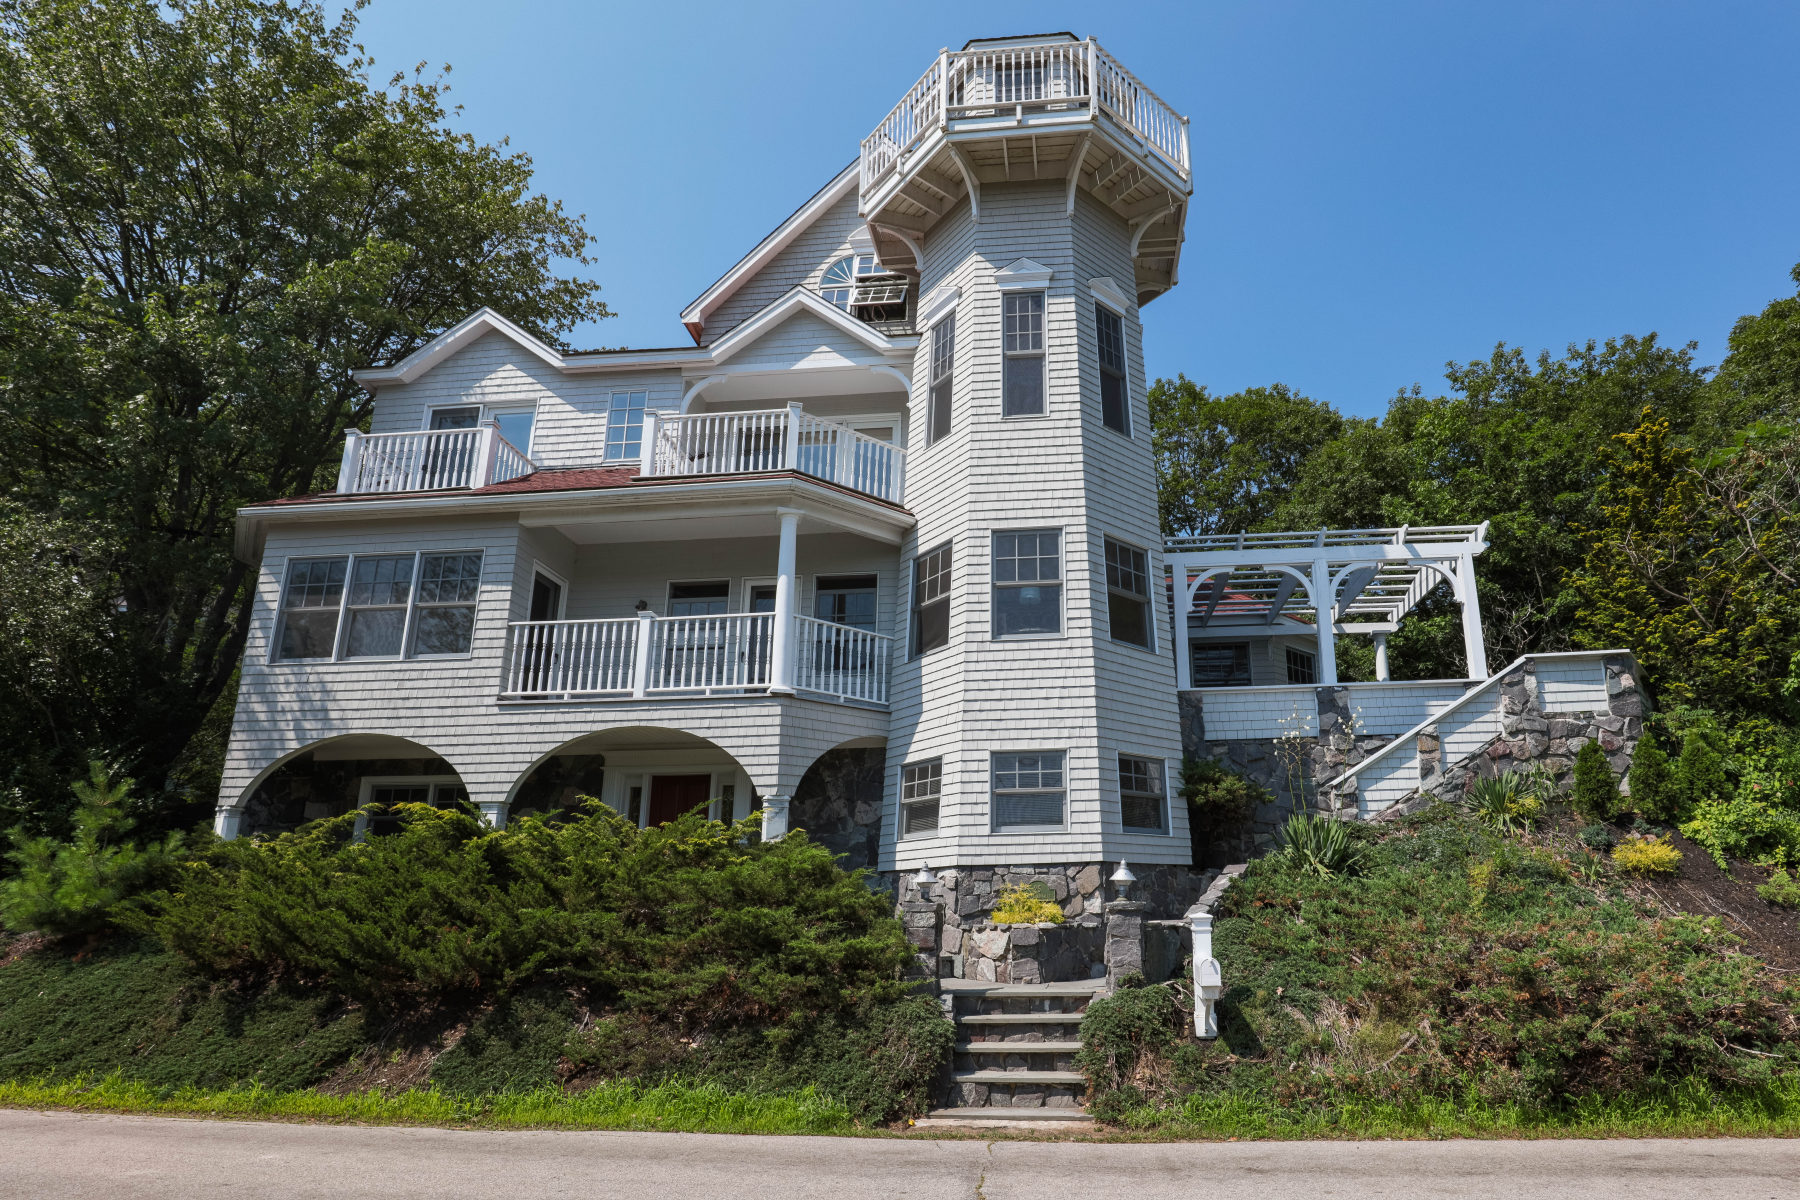 Maison unifamiliale pour l Vente à 25 Chauncey Creek Road Kittery Point, Maine, 03905 États-Unis